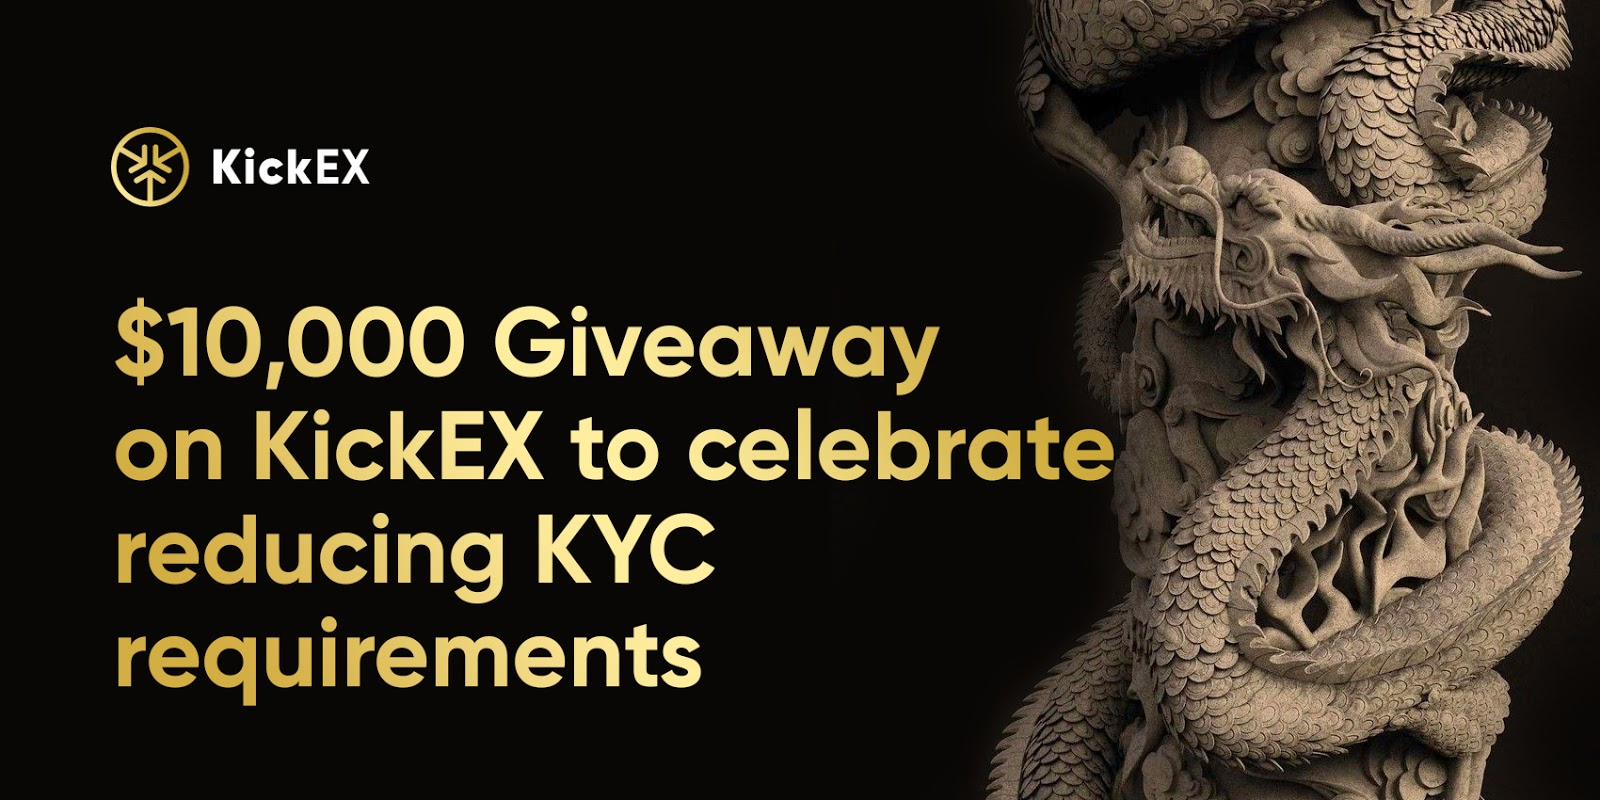 Kickex giveaway for reduced kyc